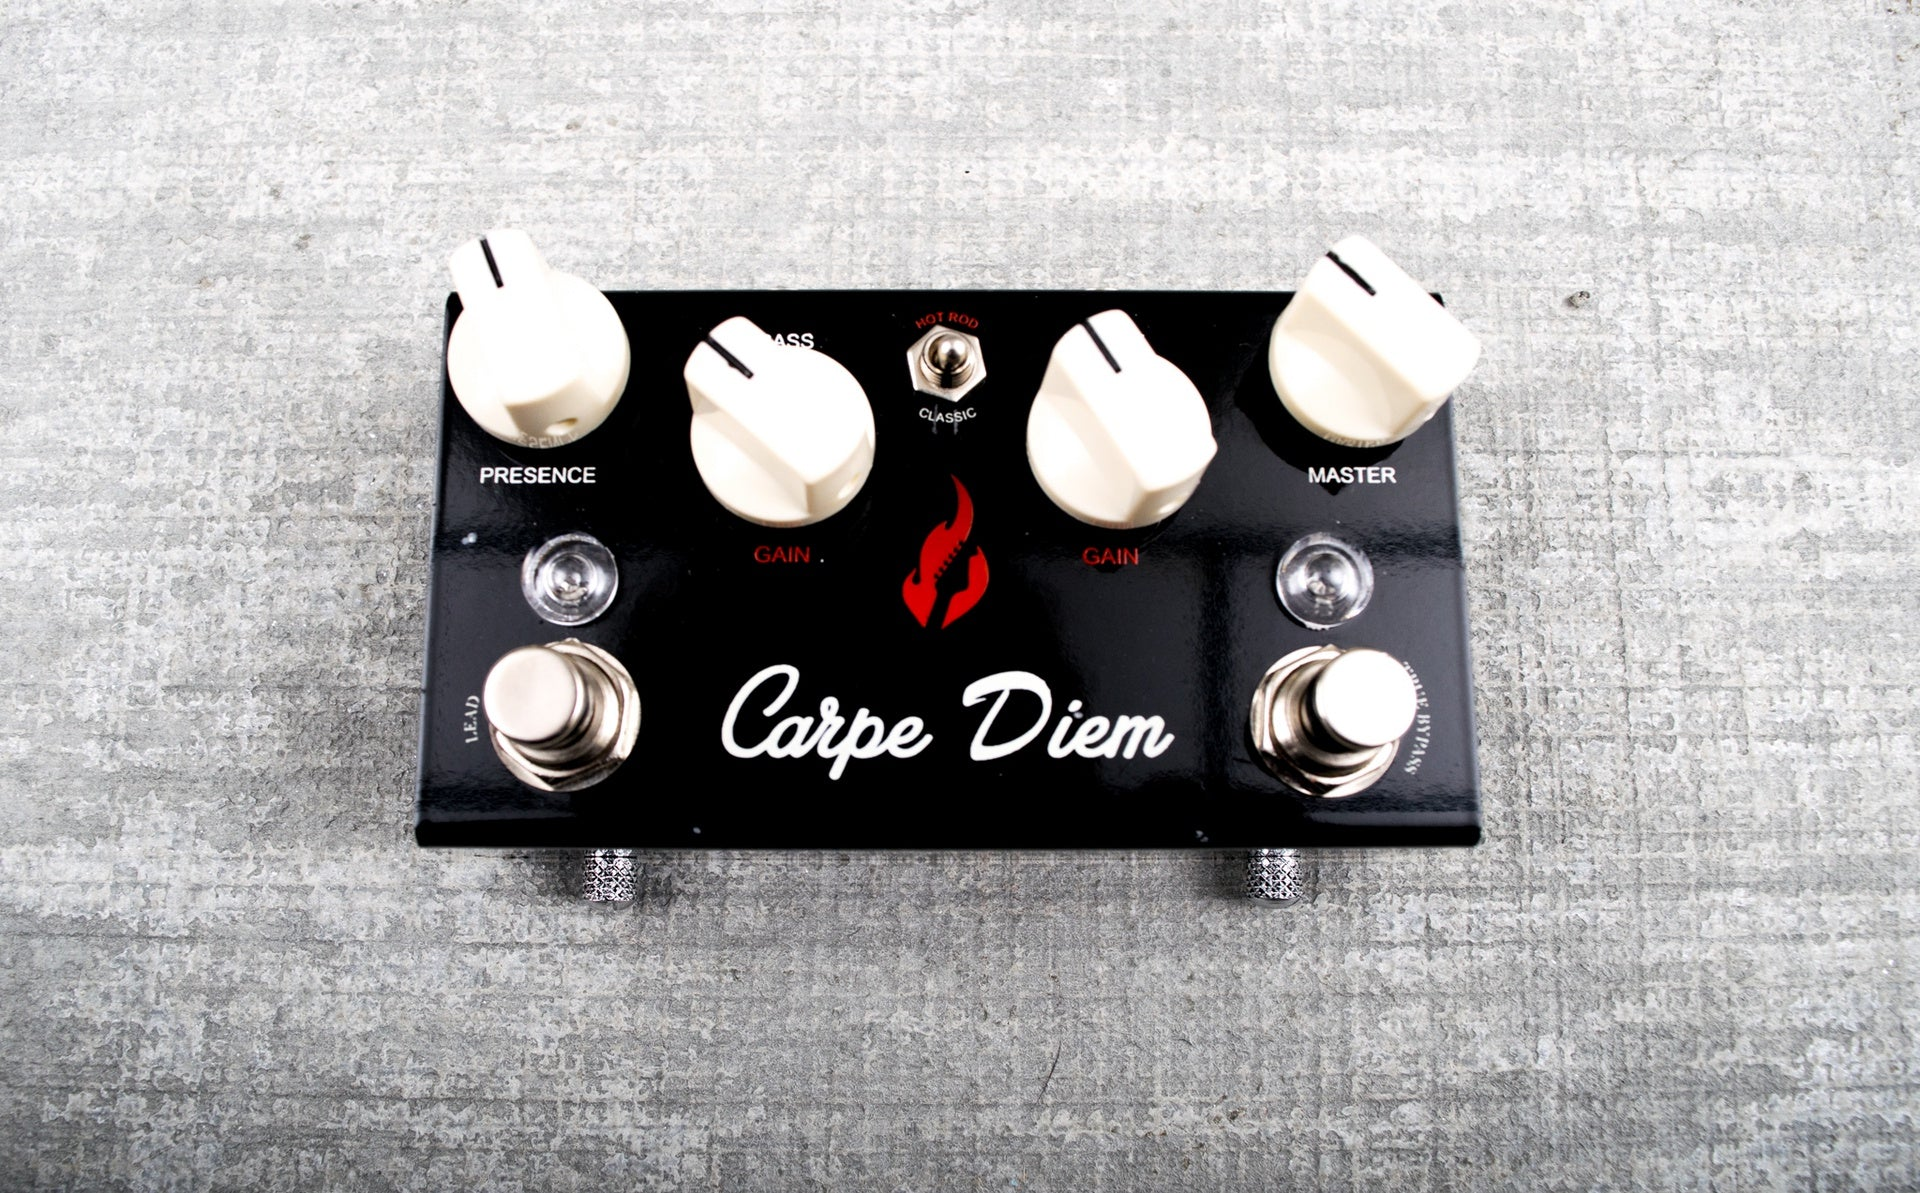 Used Fire Custom Carpe Diem Overdrive